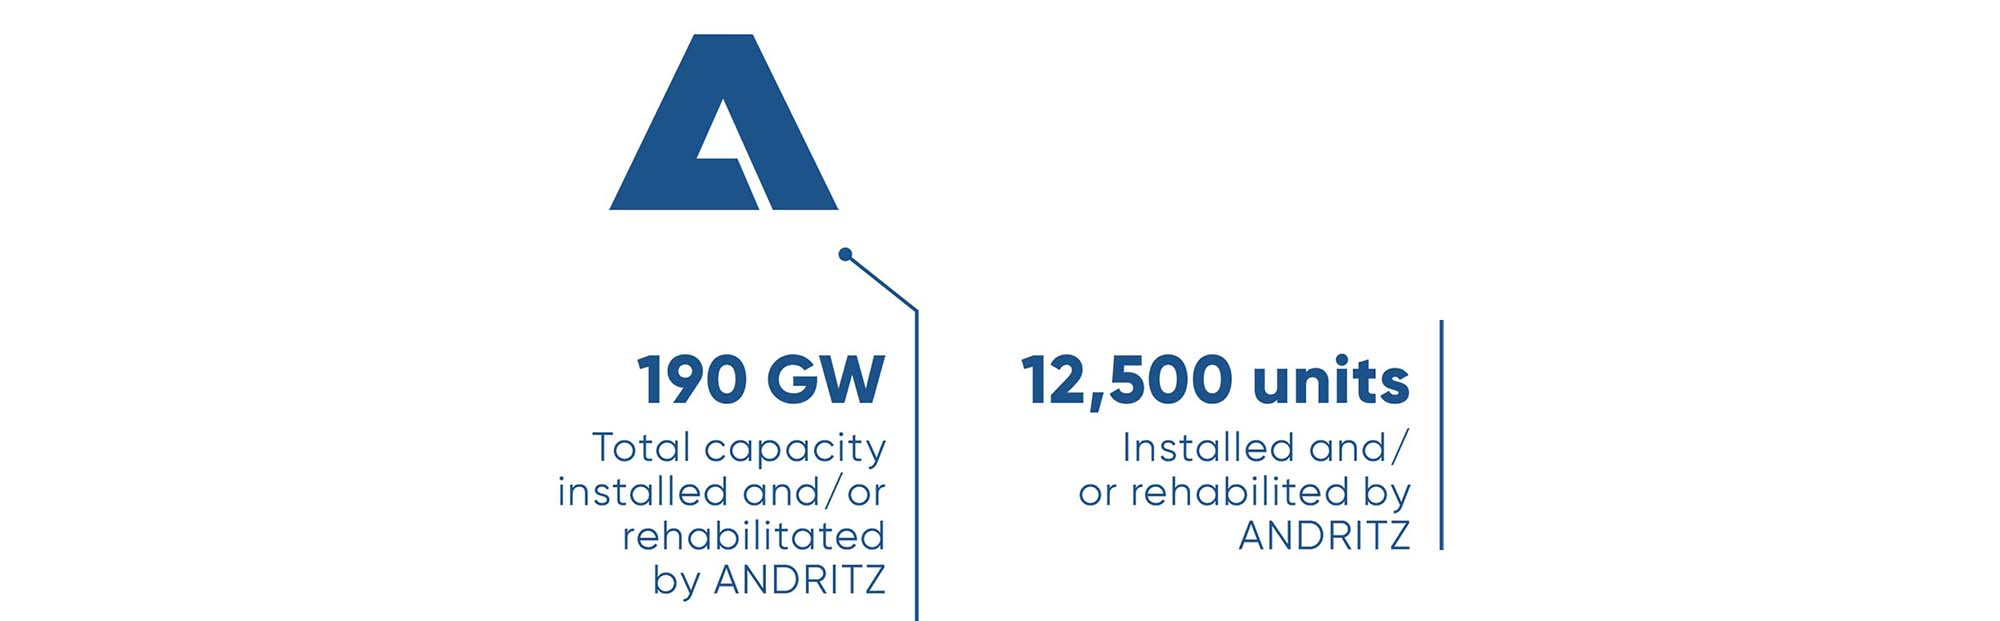 190 GW Total capacity installed and/or rehabilitated by ANDRITZ, 12,500 units Installed and/or rehabilited by ANDRITZ